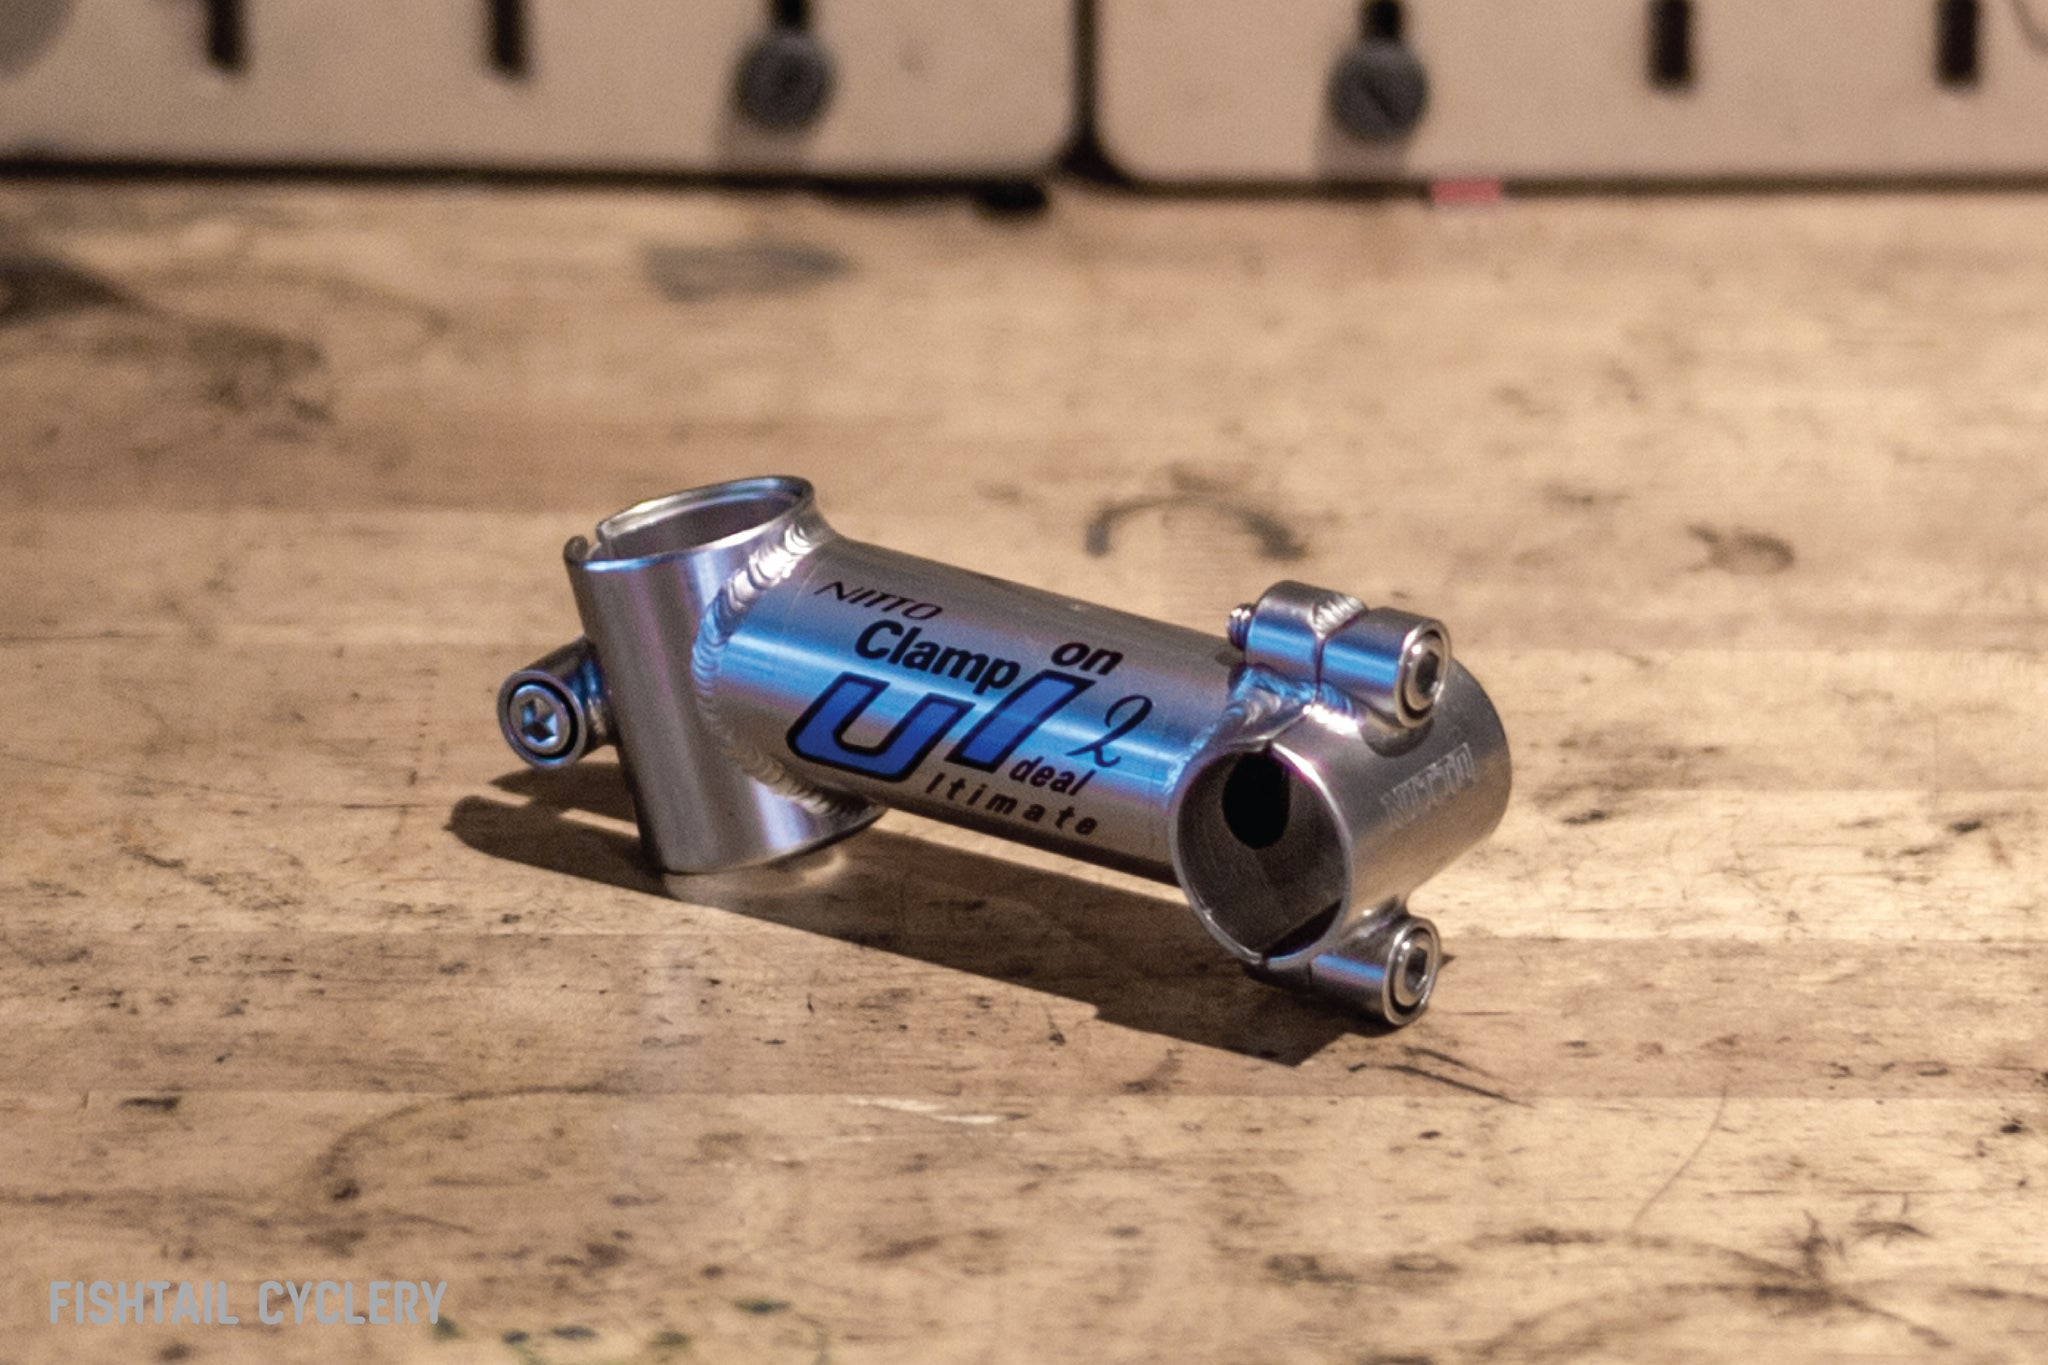 NITTO UI-2 CLAMP ON STEM